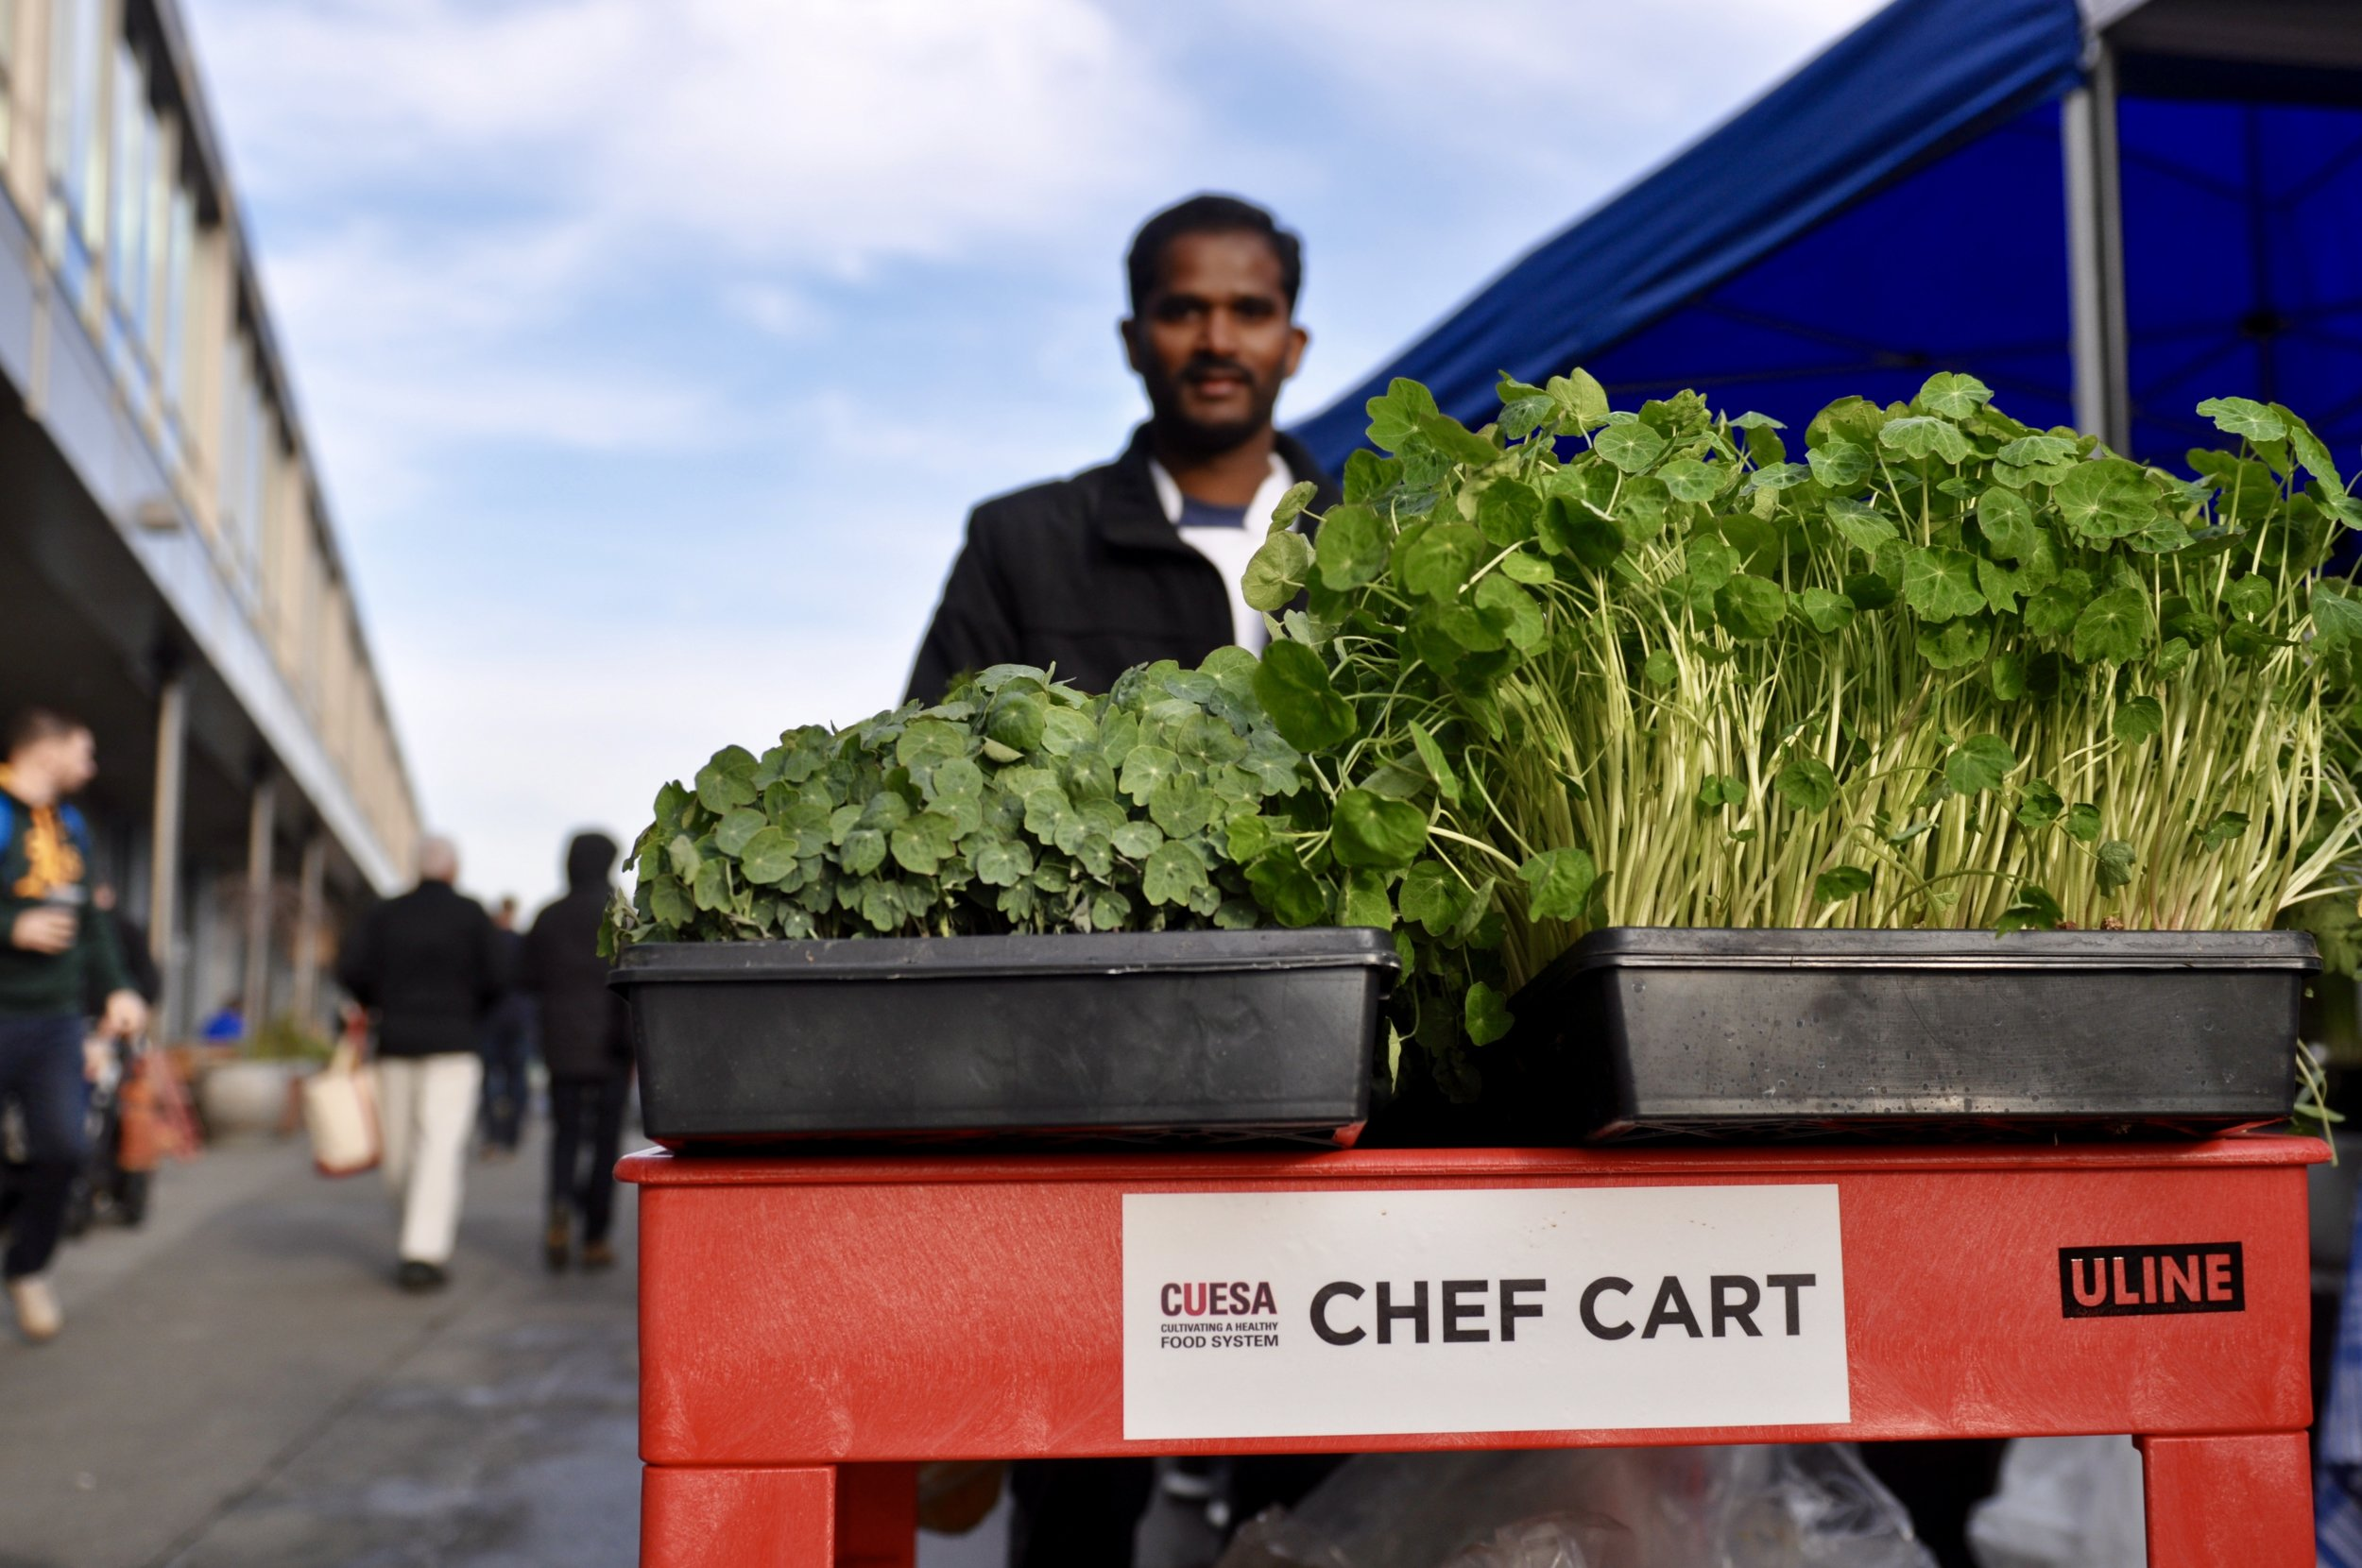 Dosa Chef Kumar goes to the farmer's market on a regular basis to incorporate seasonal ingredients on the restaurant's menu.